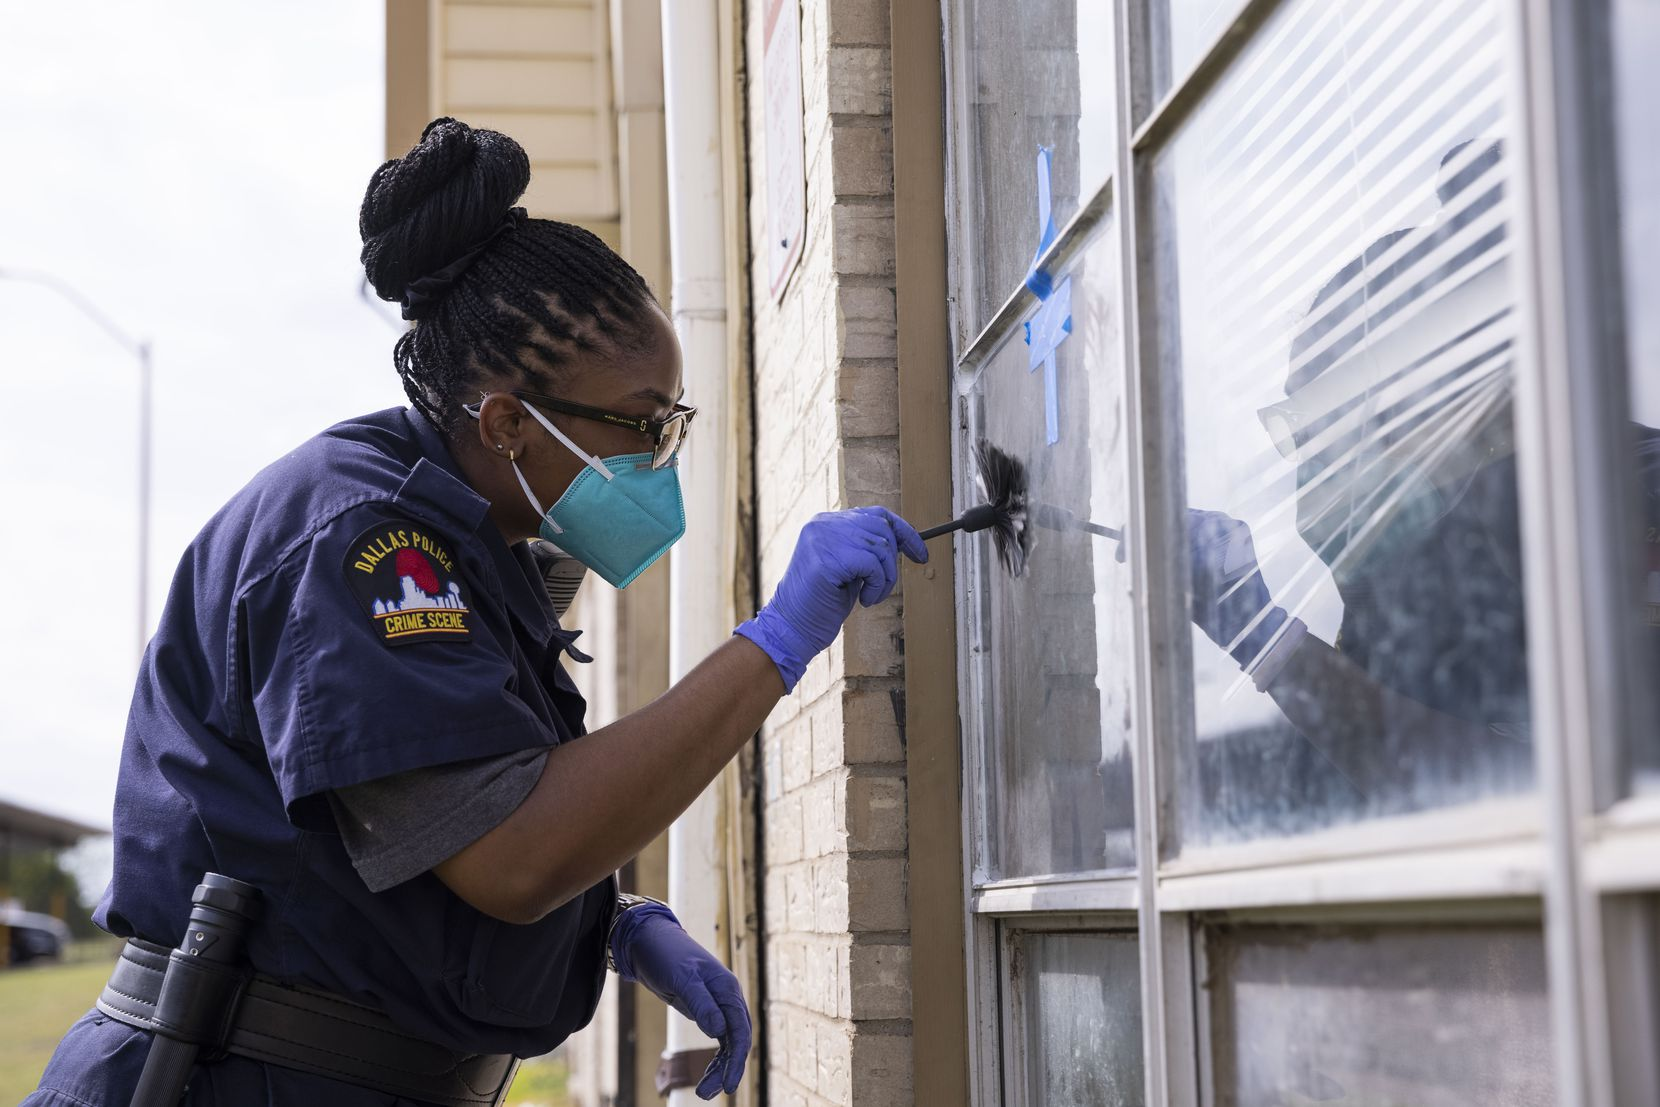 A Dallas Police crime scene investigator searches for prints outside of  Kayla and Daniel Aguilar's apartment on Wednesday, Oct. 13, 2021, at Highland Hills apartments in Dallas. Multiple residents who were displaced from the Highland Hills apartments last week had their apartment units broken into overnight.